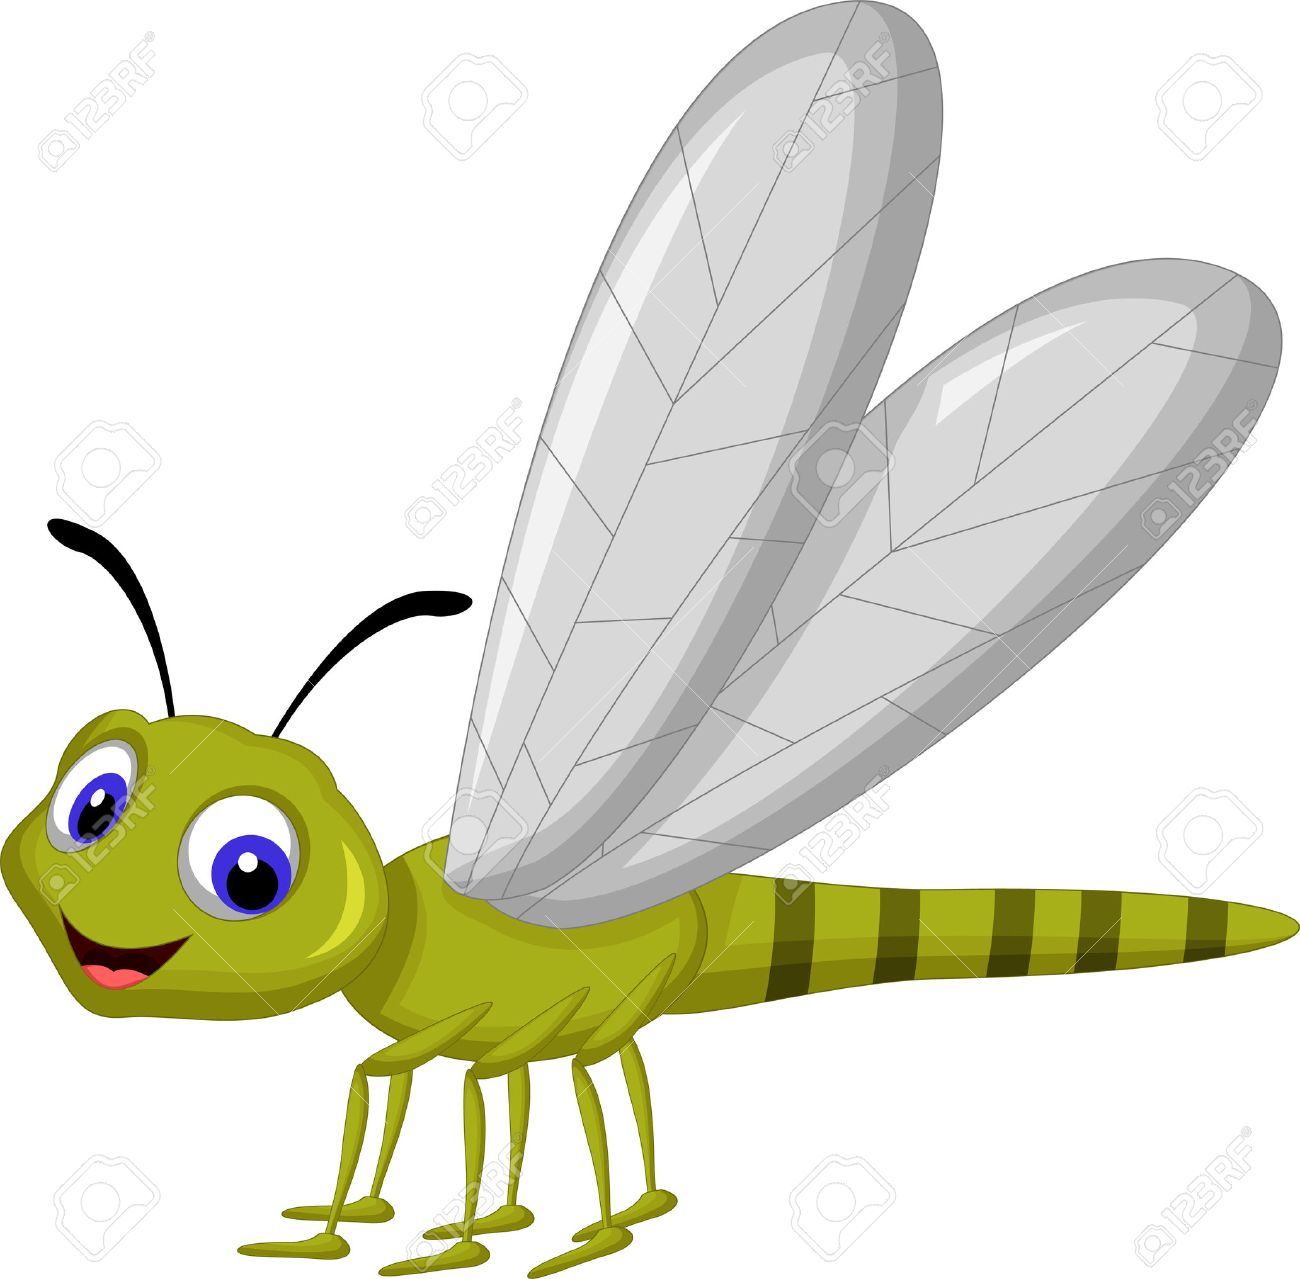 dragonfly cartoon royalty free cliparts vectors and stock